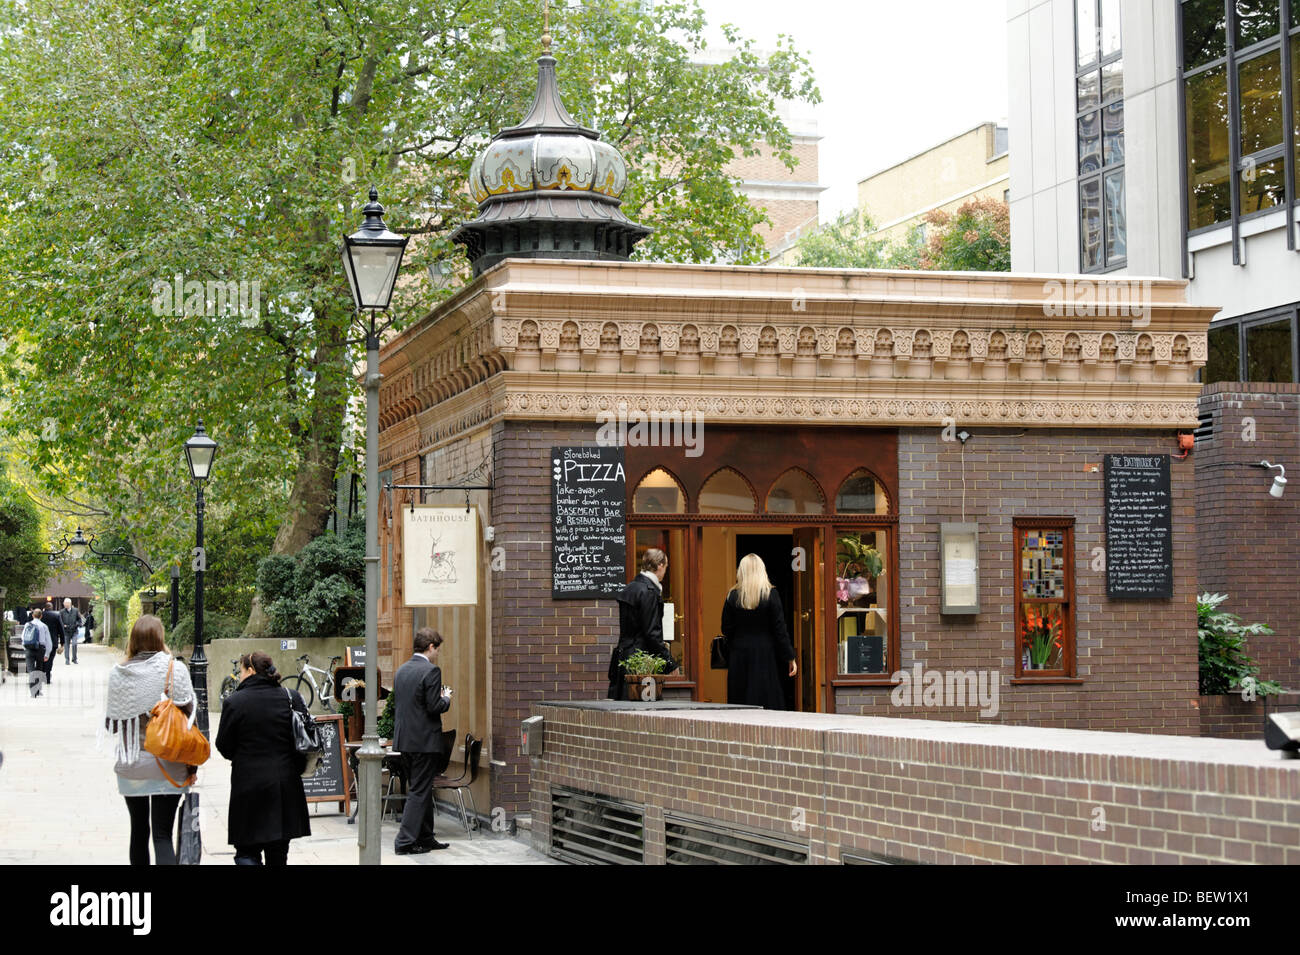 The Bathhouse restaurant and club venue. Built as a Turkish Baths in 1894. Central London. Britain. UK - Stock Image